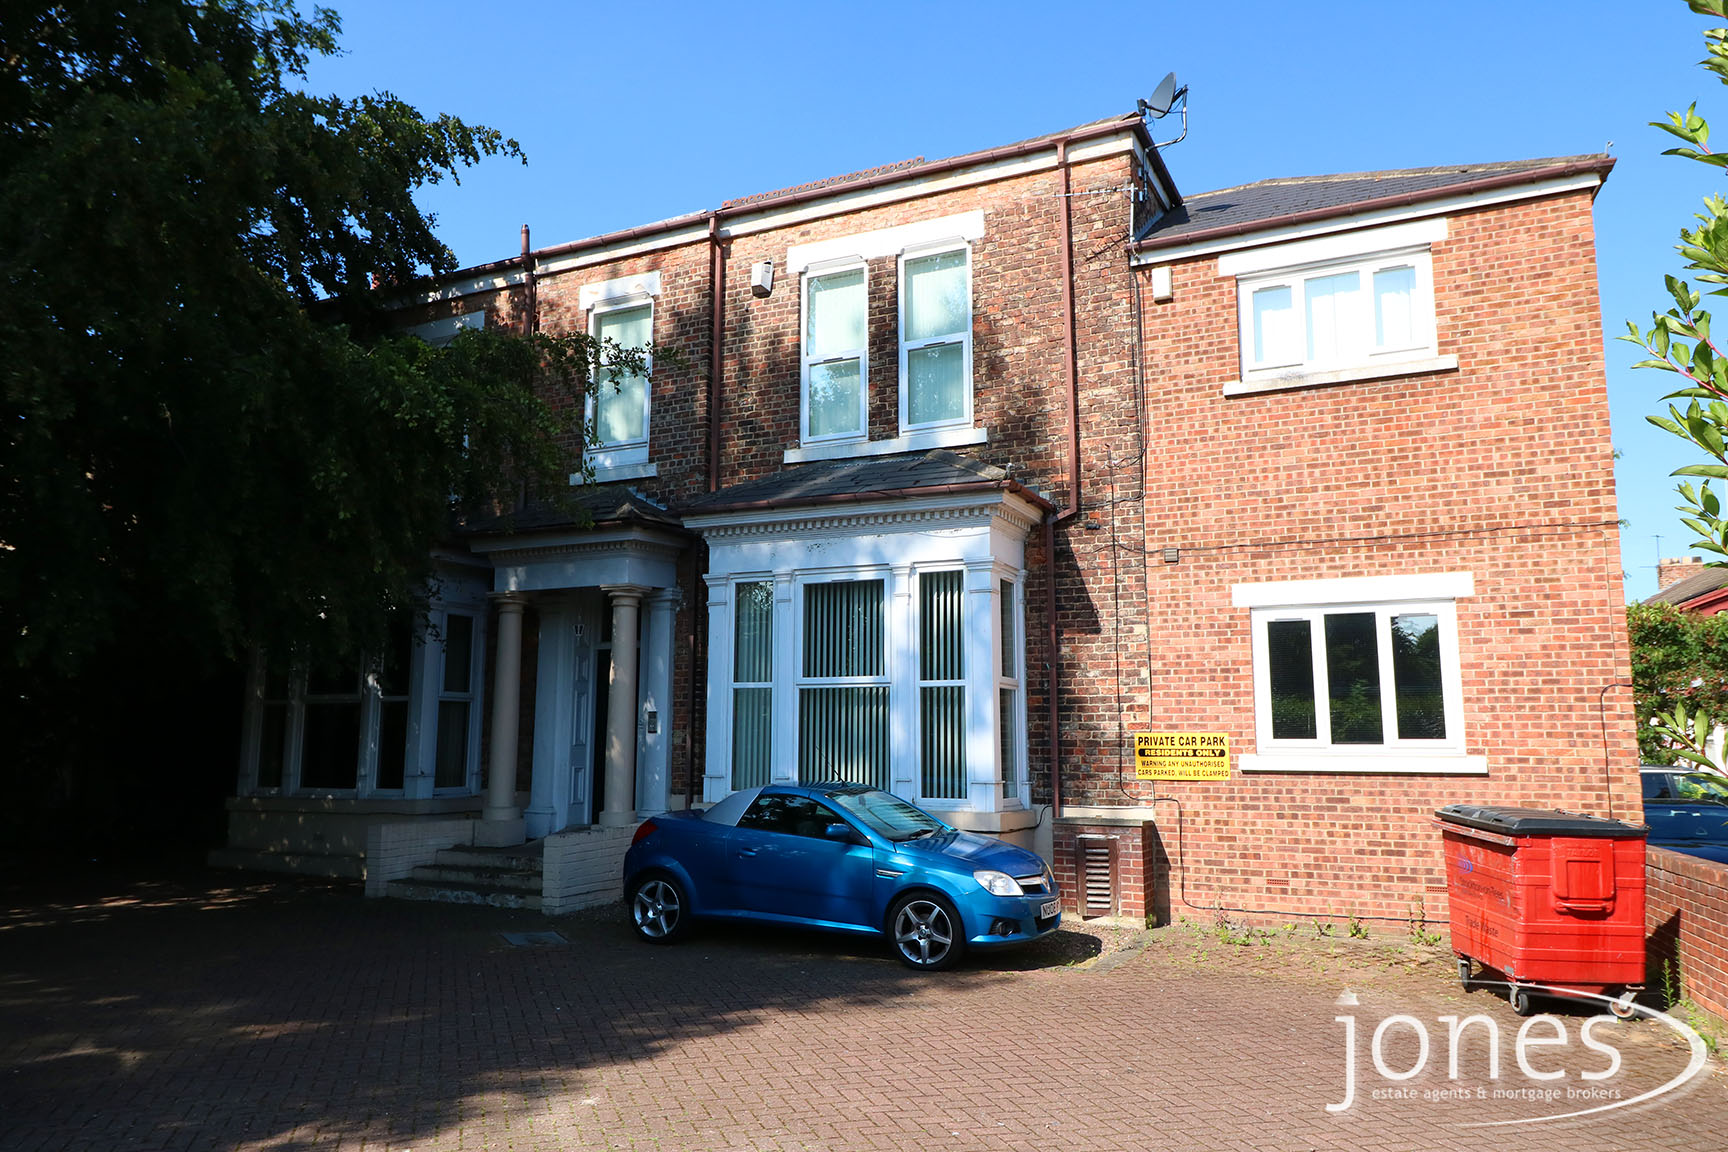 Home for Sale Let - Photo 01 Norton Mews, 359 Norton Road (OFF Dorlcote Place ), Stockton on Tees, TS20 2PH